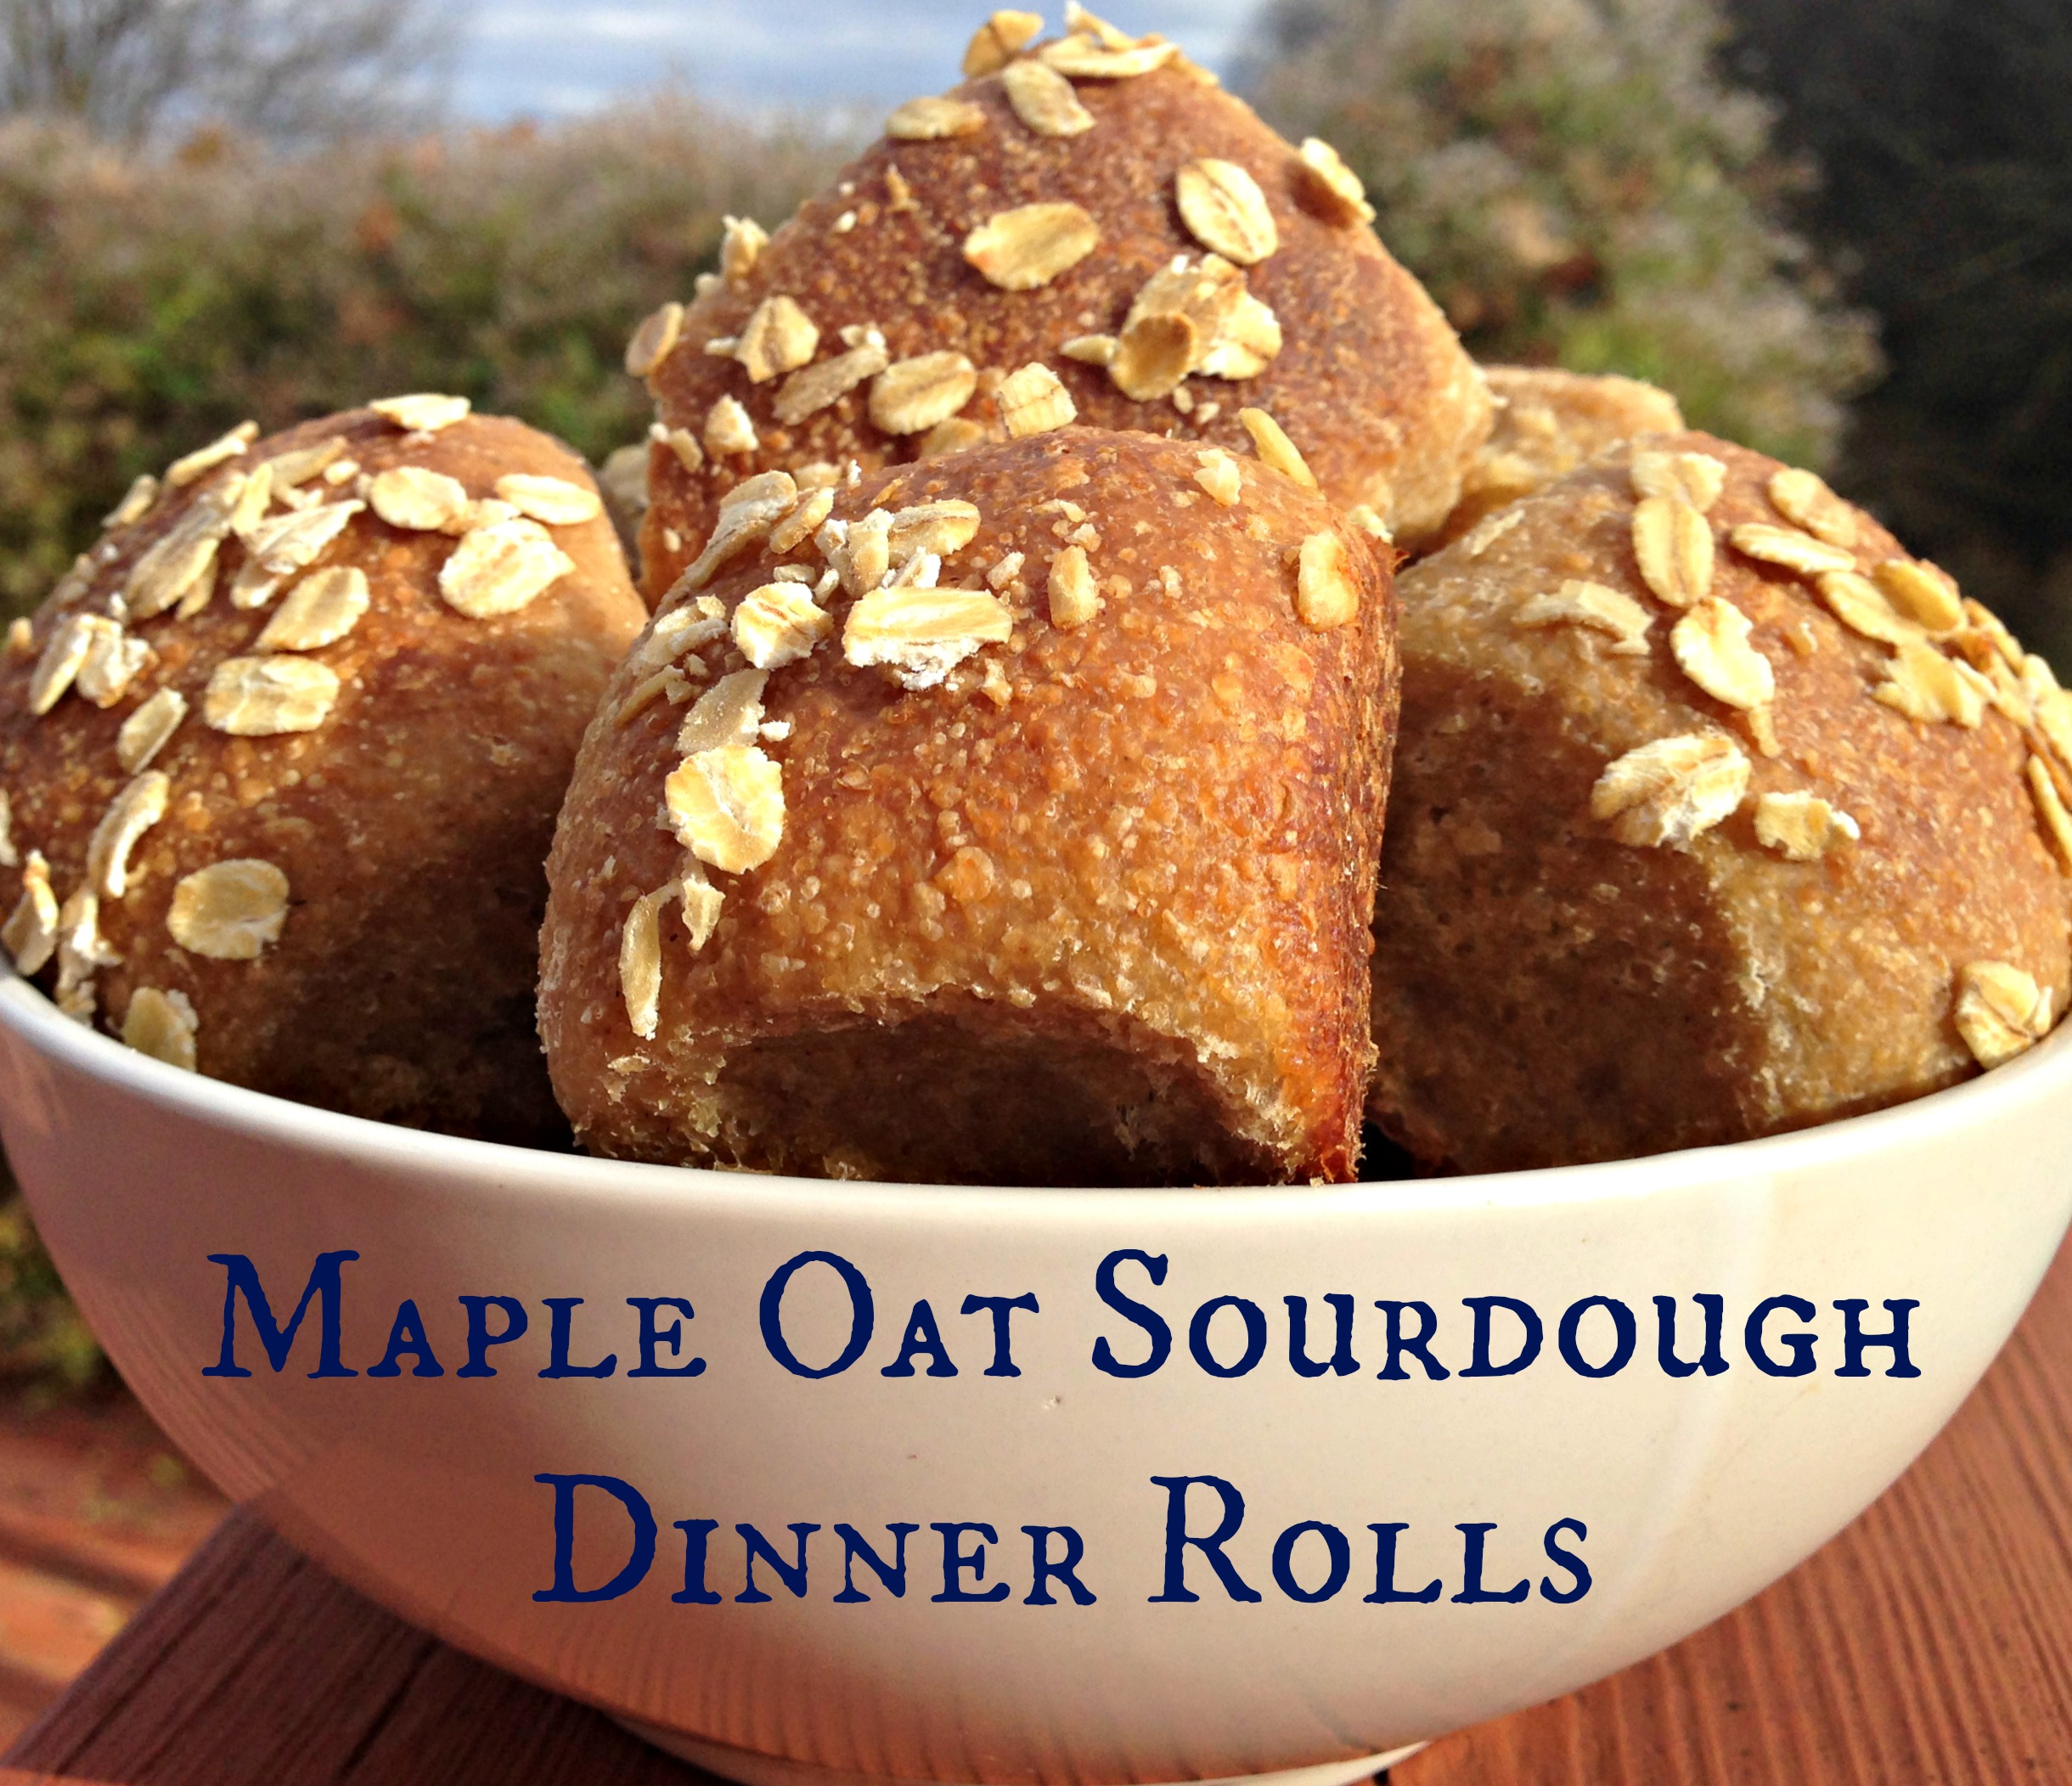 Maple Oat Sourdough Dinner Rolls on the Grain Mill Wagon, by Kristen @ Smithspirations